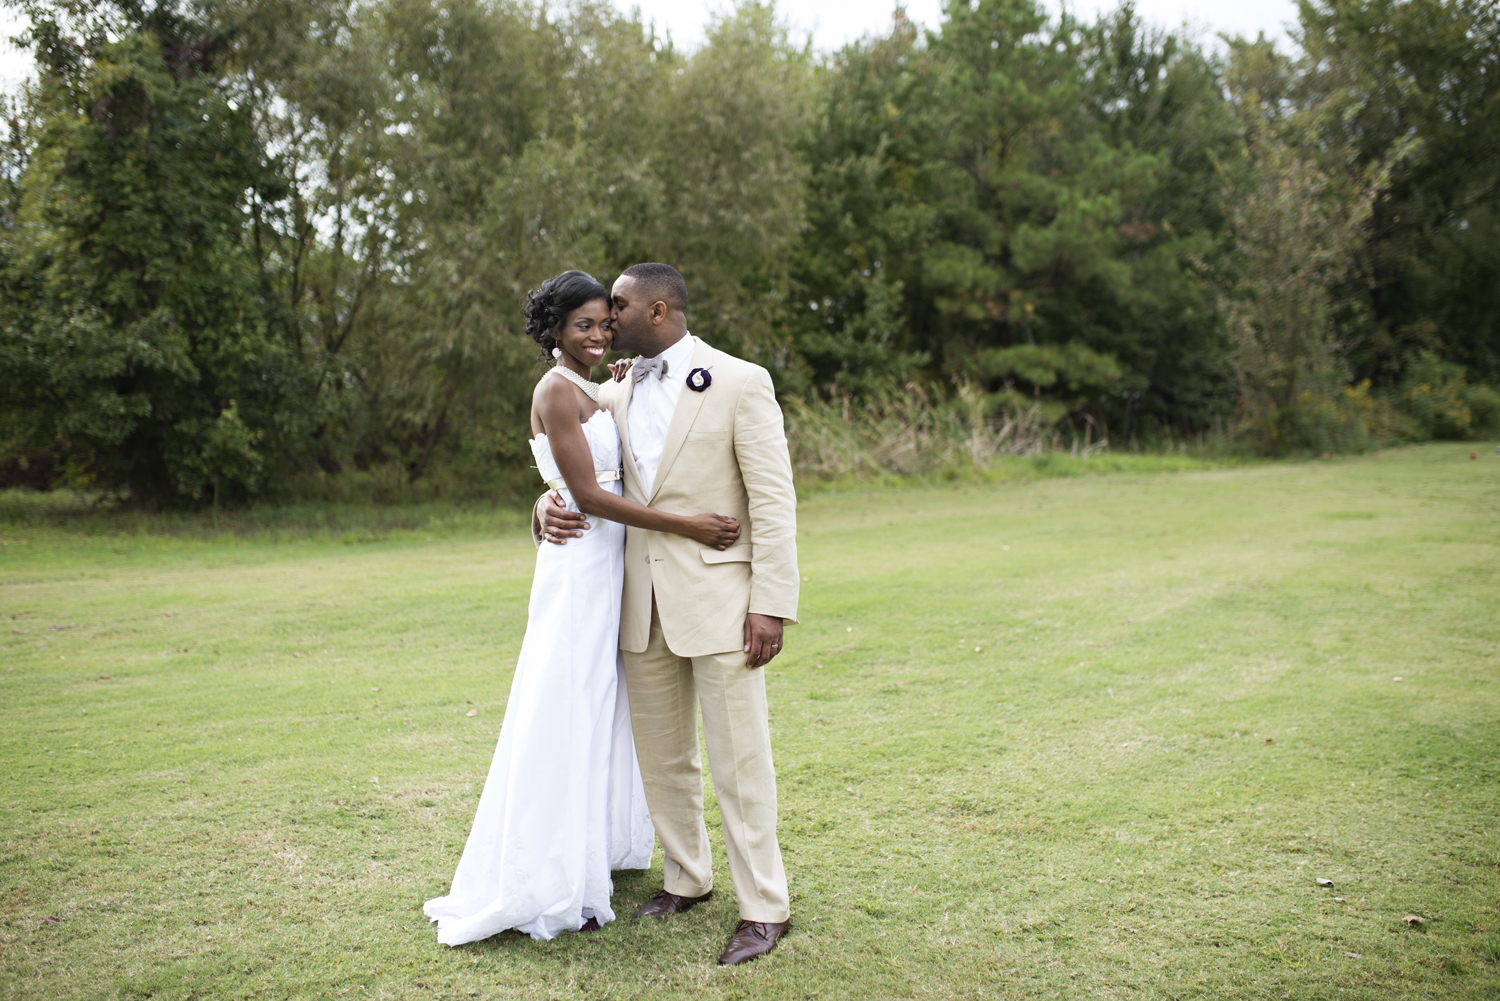 Groom kisses his bride on the cheek on a golf course in Virginia